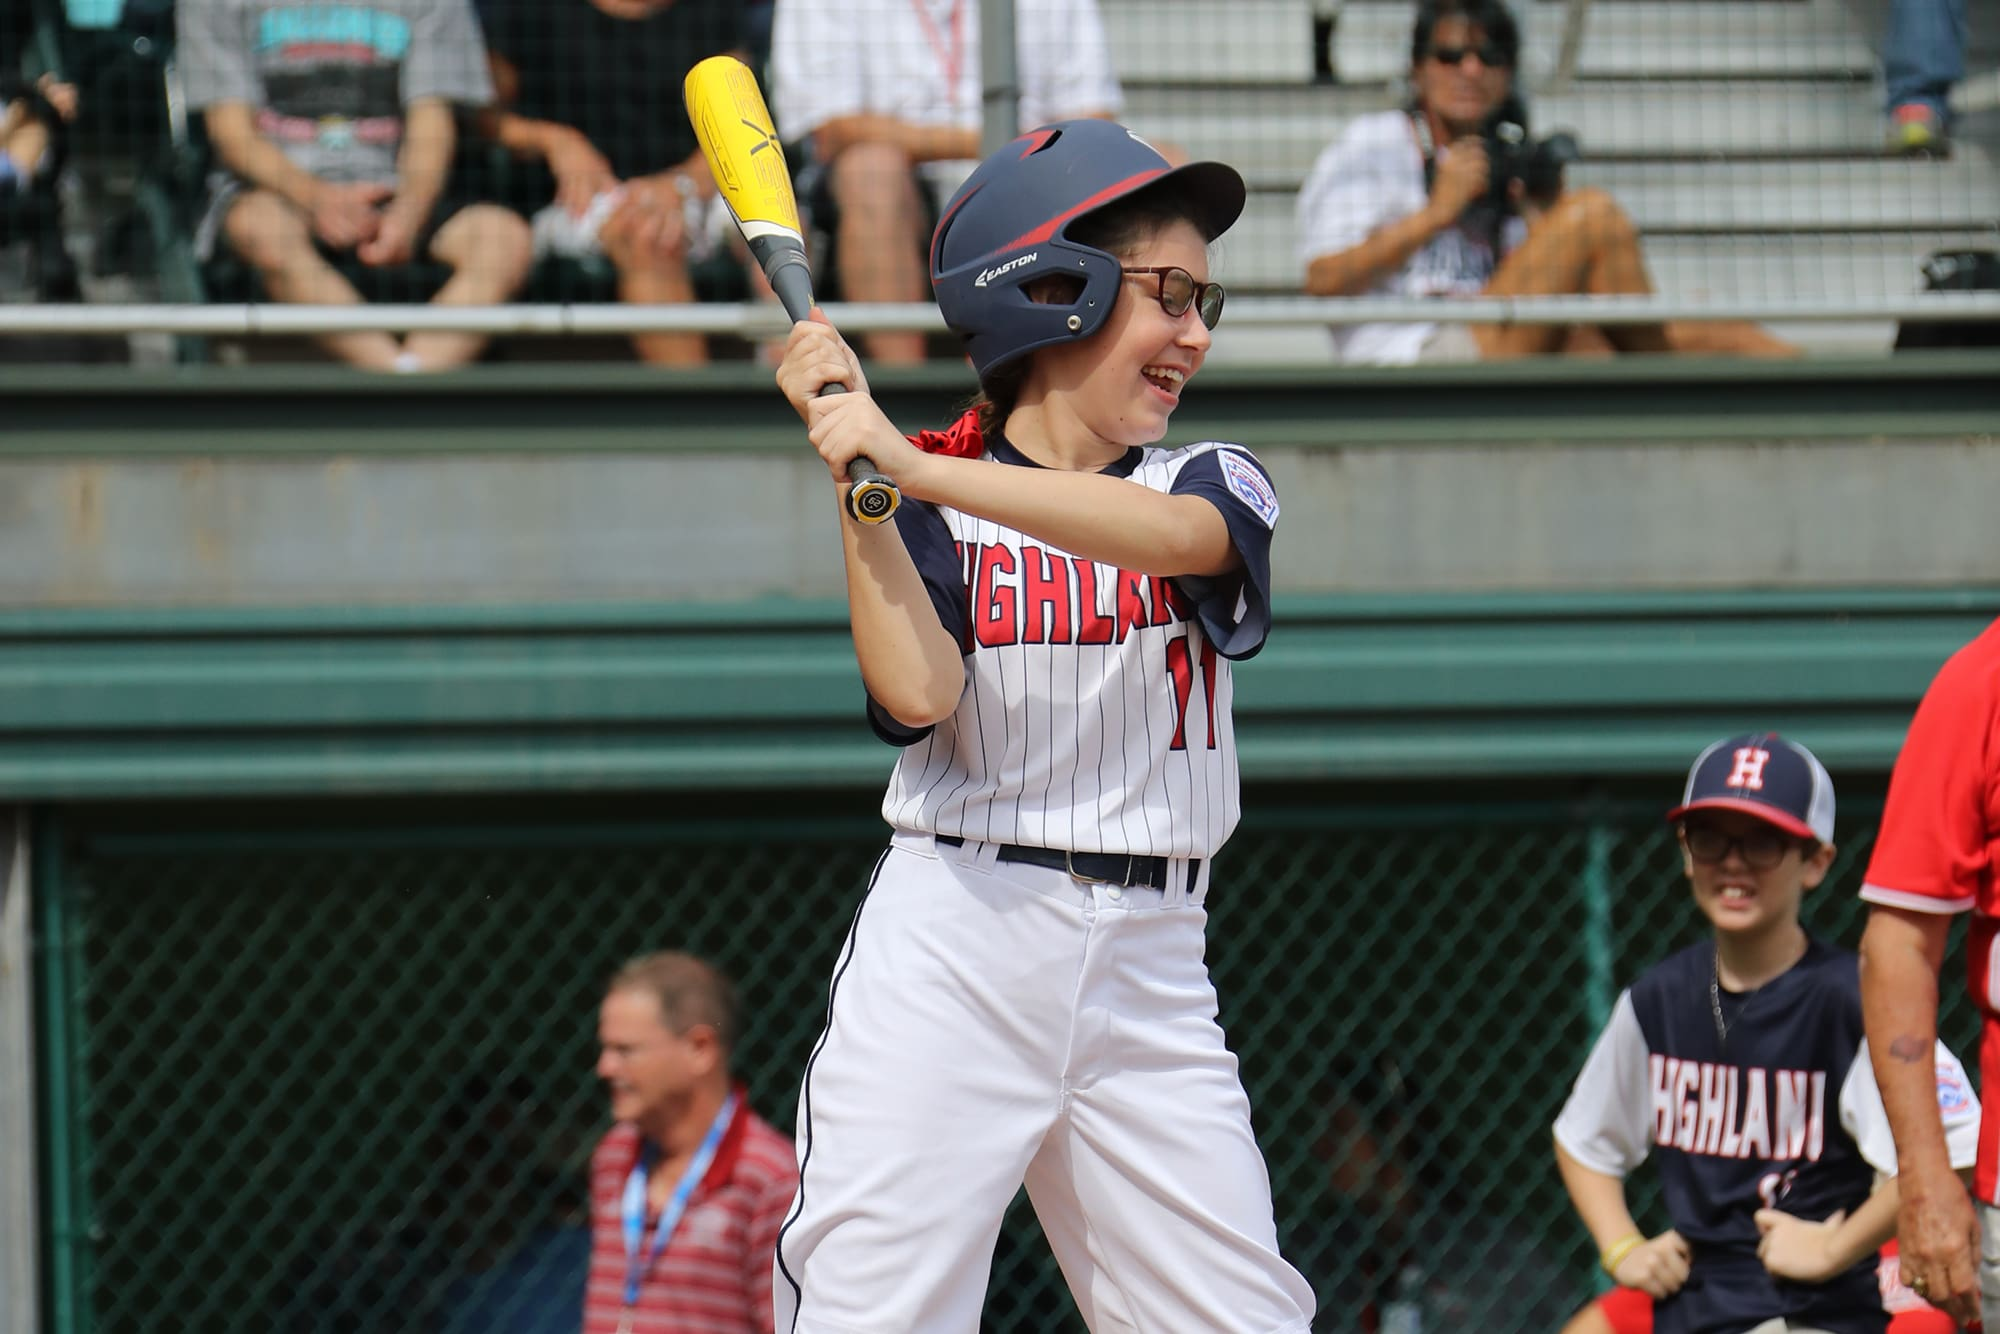 challenger game - player holding bat